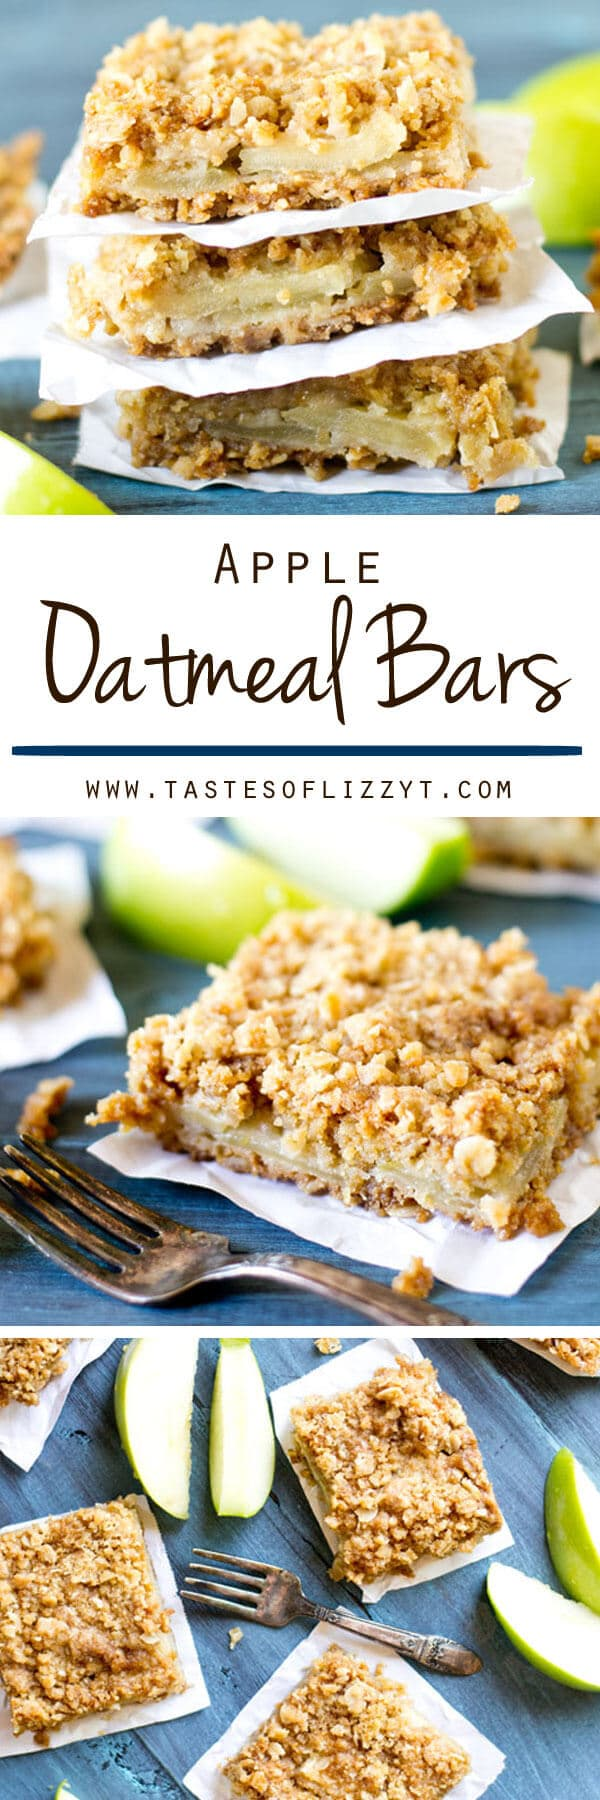 Layered Apple Oatmeal Bars are an easy apple dessert. Apples slices are stuffed between a soft, buttery, brown sugar oatmeal crust and topping.